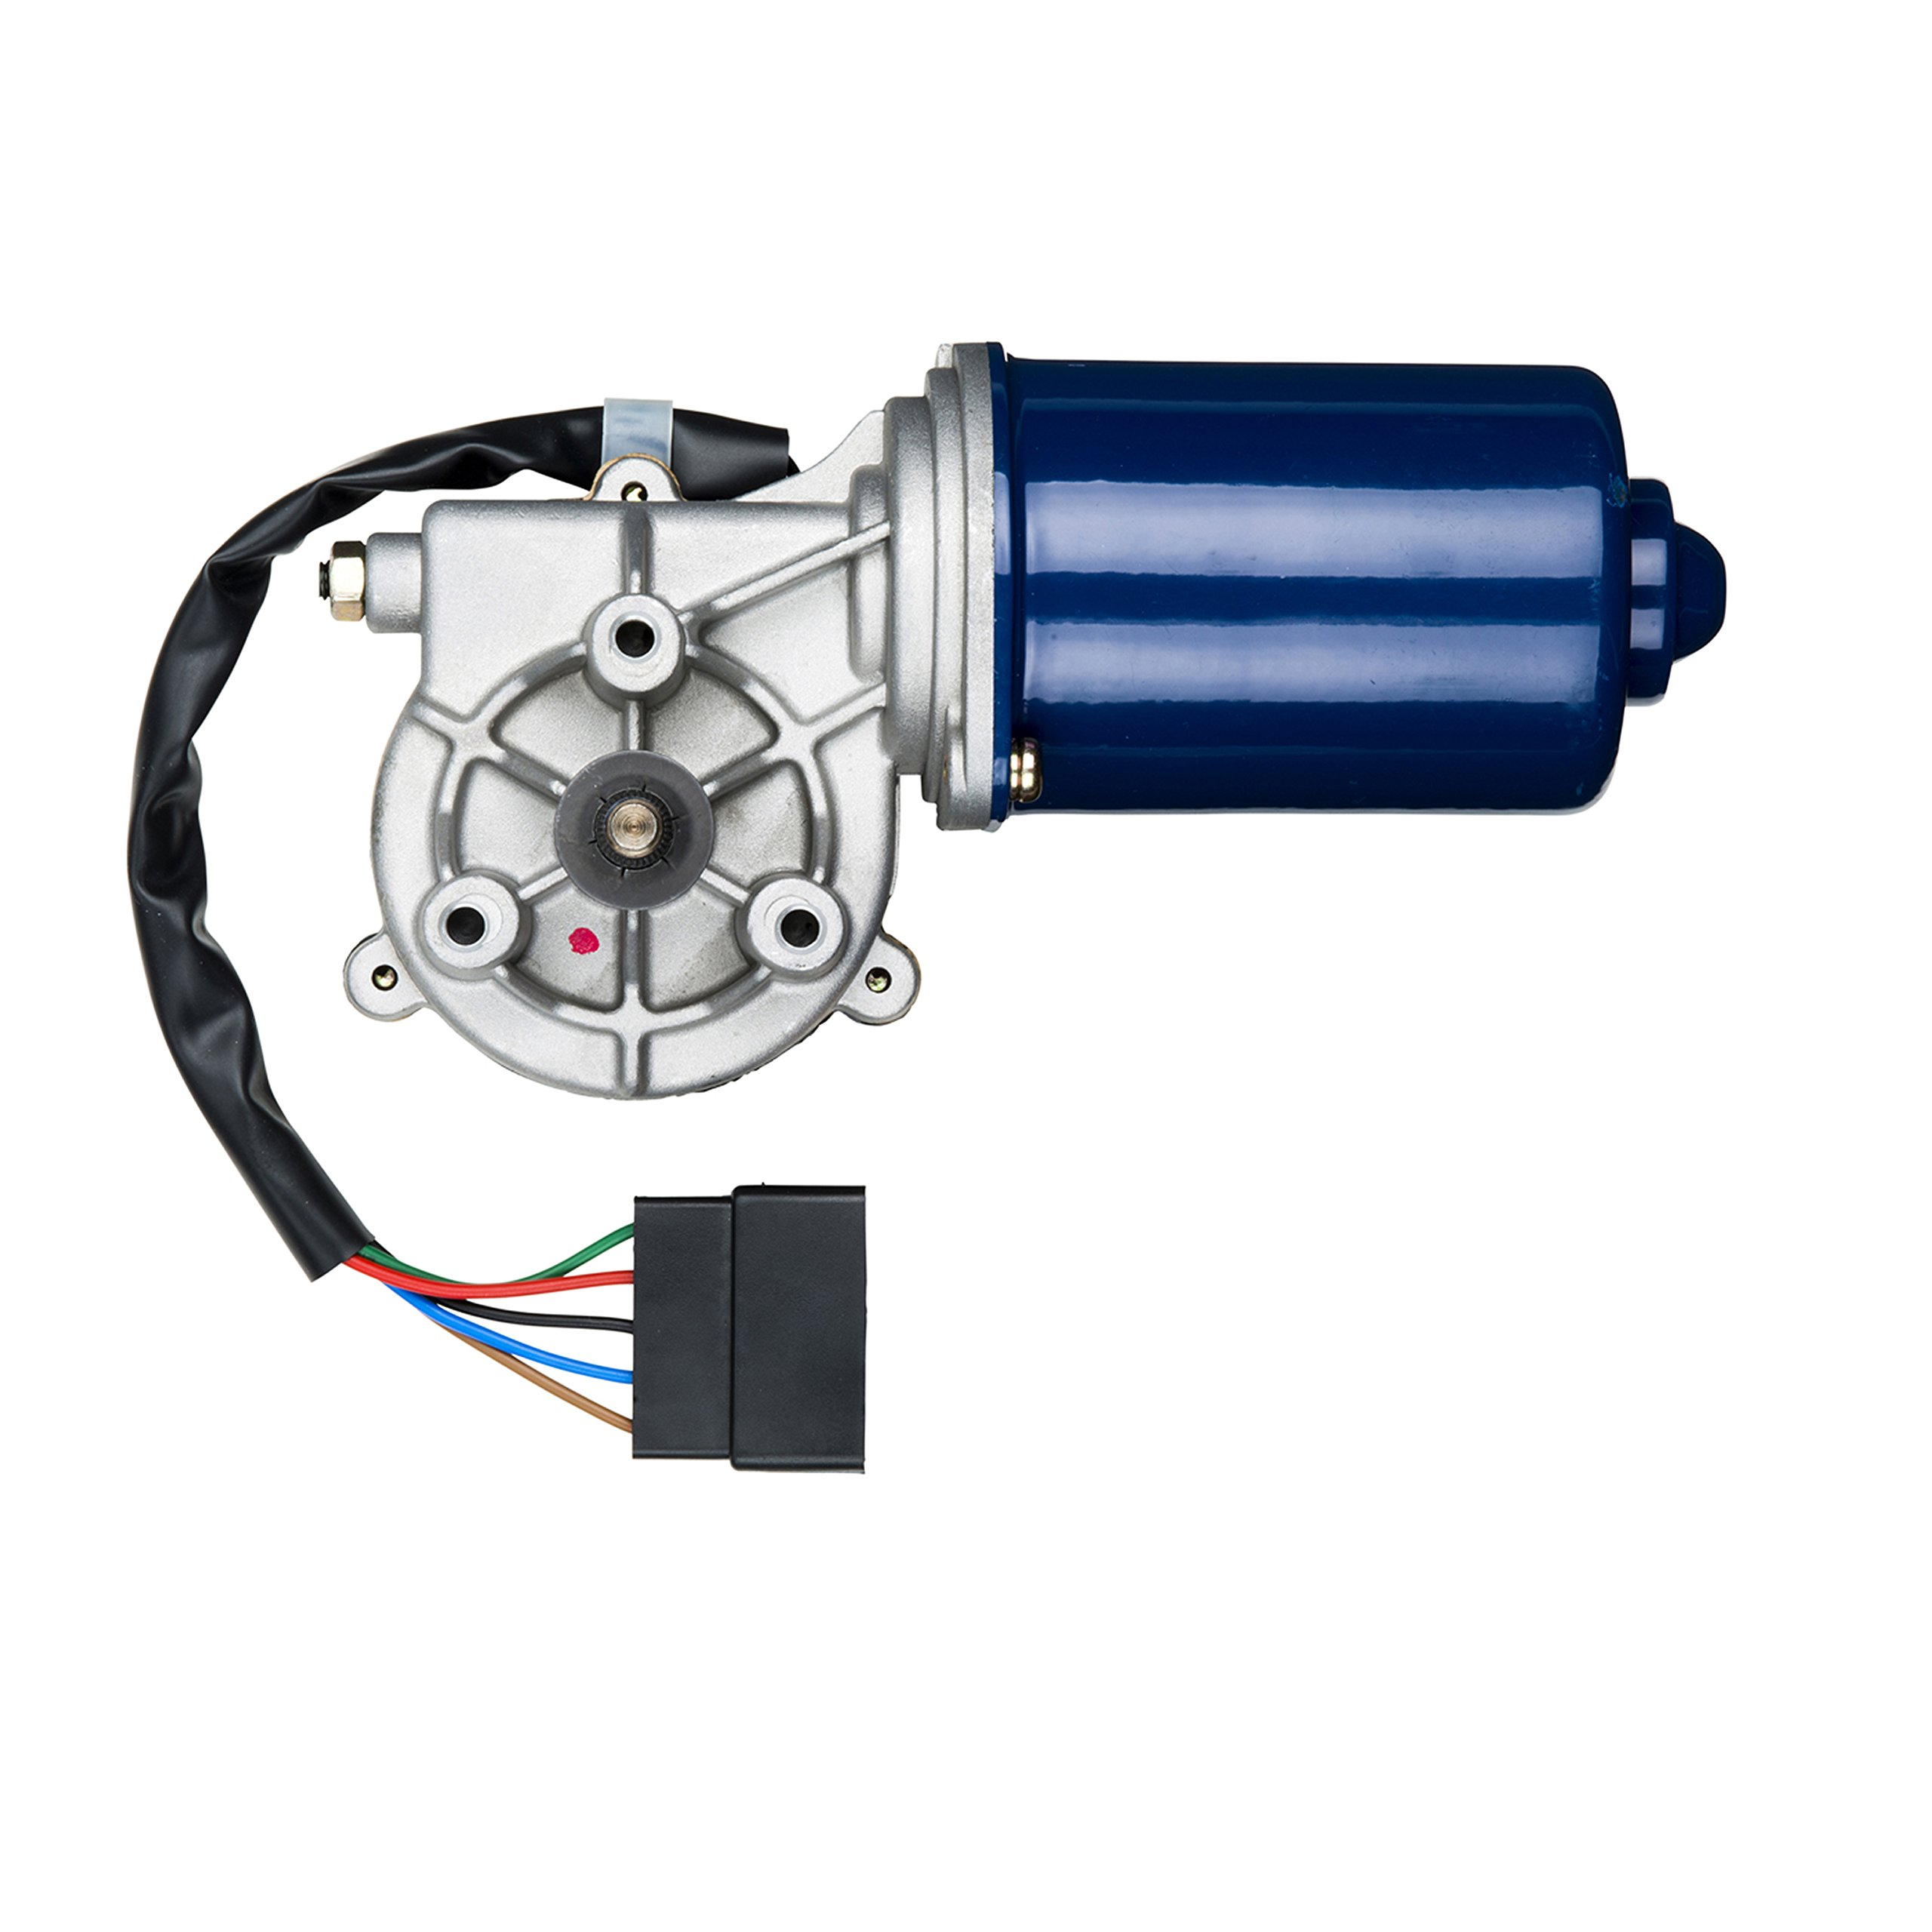 Wexco Wiper Motor, H137, (411.01301.2824) 24V, 32Nm, Coast-to-Park Wiper Motor by AutoTex